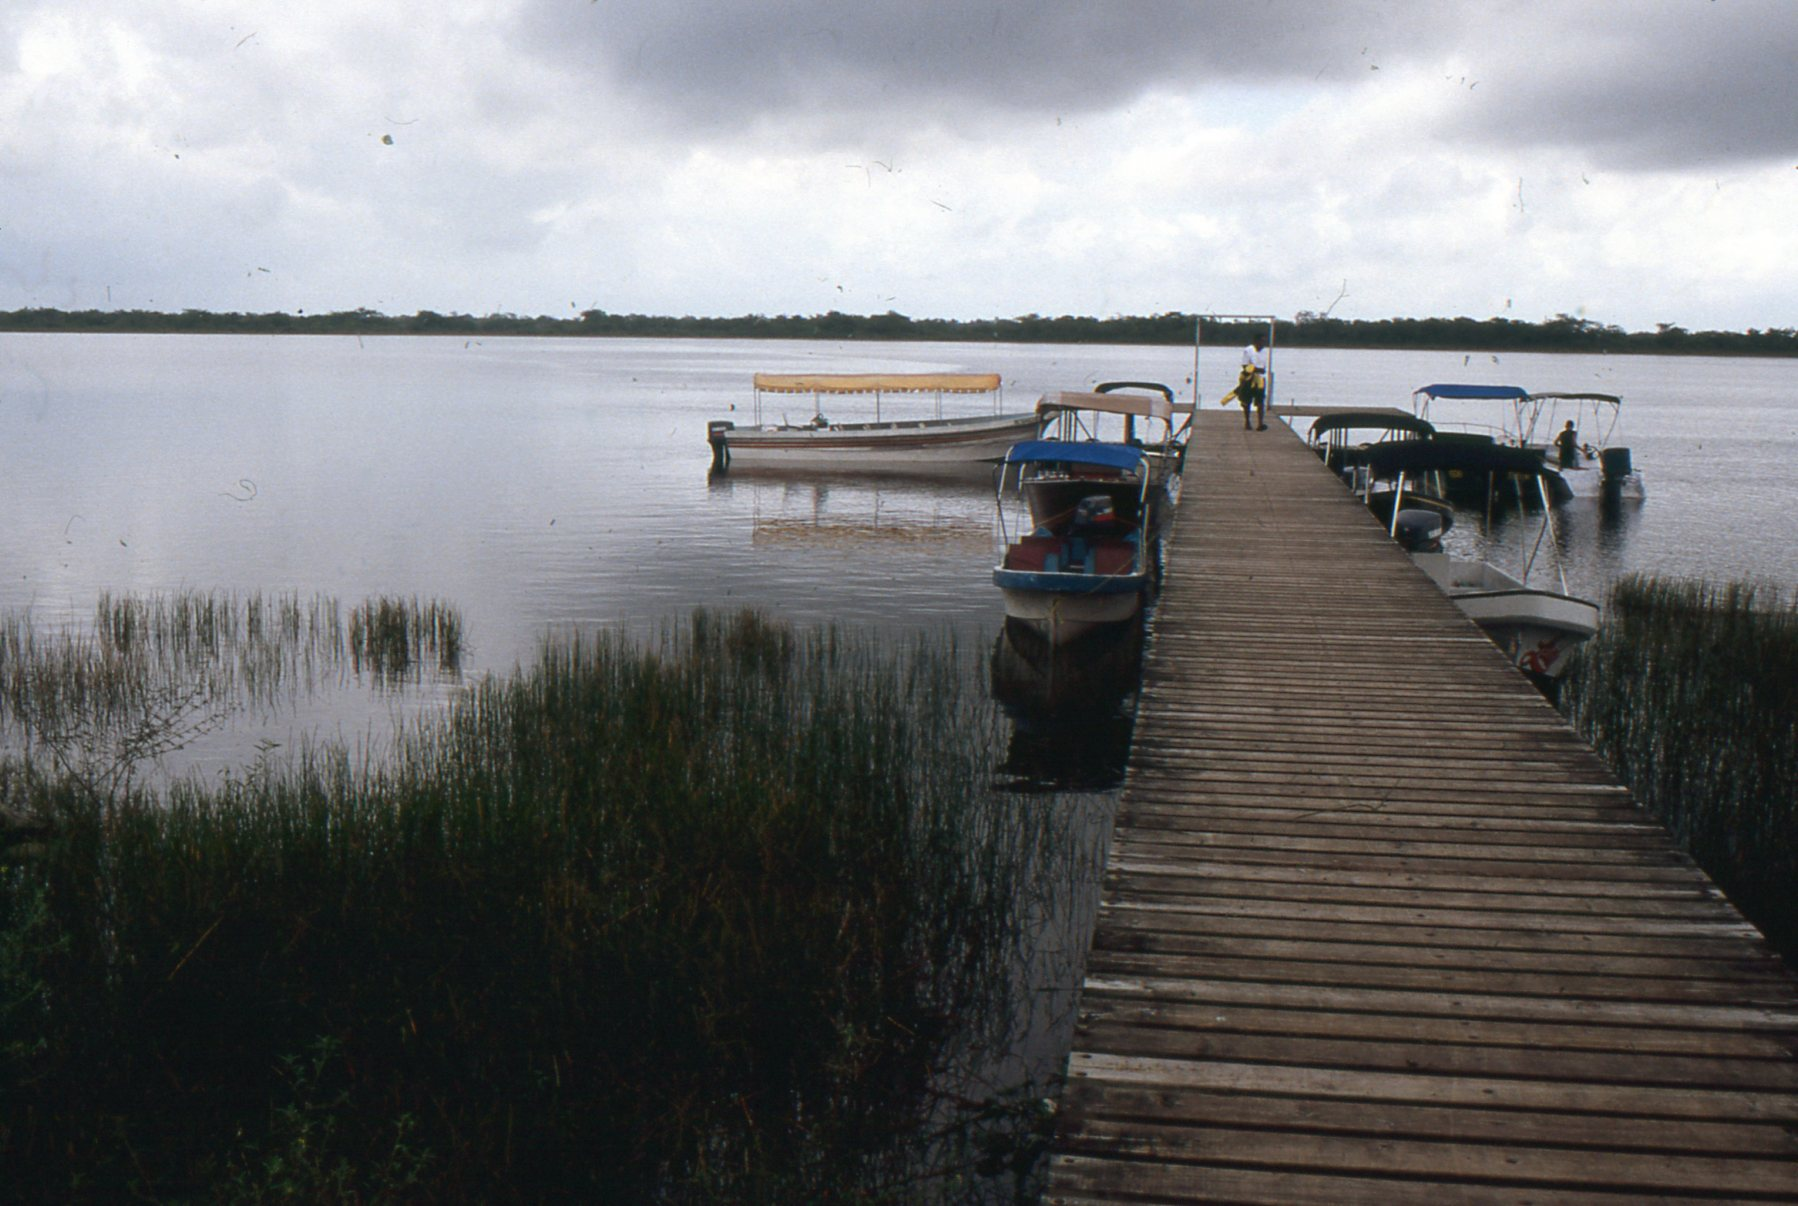 By the time you reach the boat dock at Lamanai, the river has spread out into a lagoon and the Mayan past seems to have taken over completely.